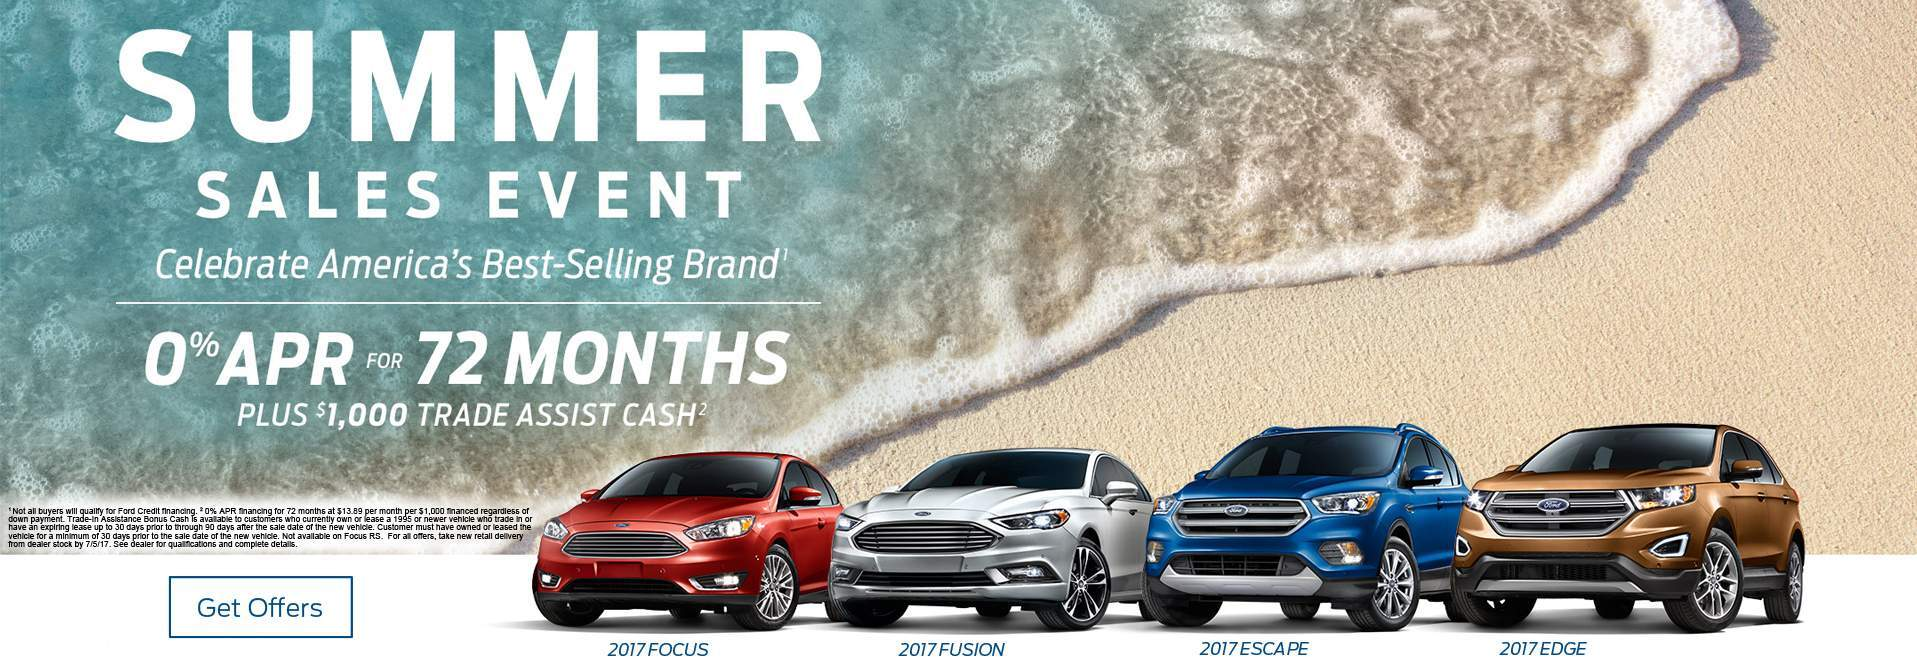 2017 Summer Sales Event